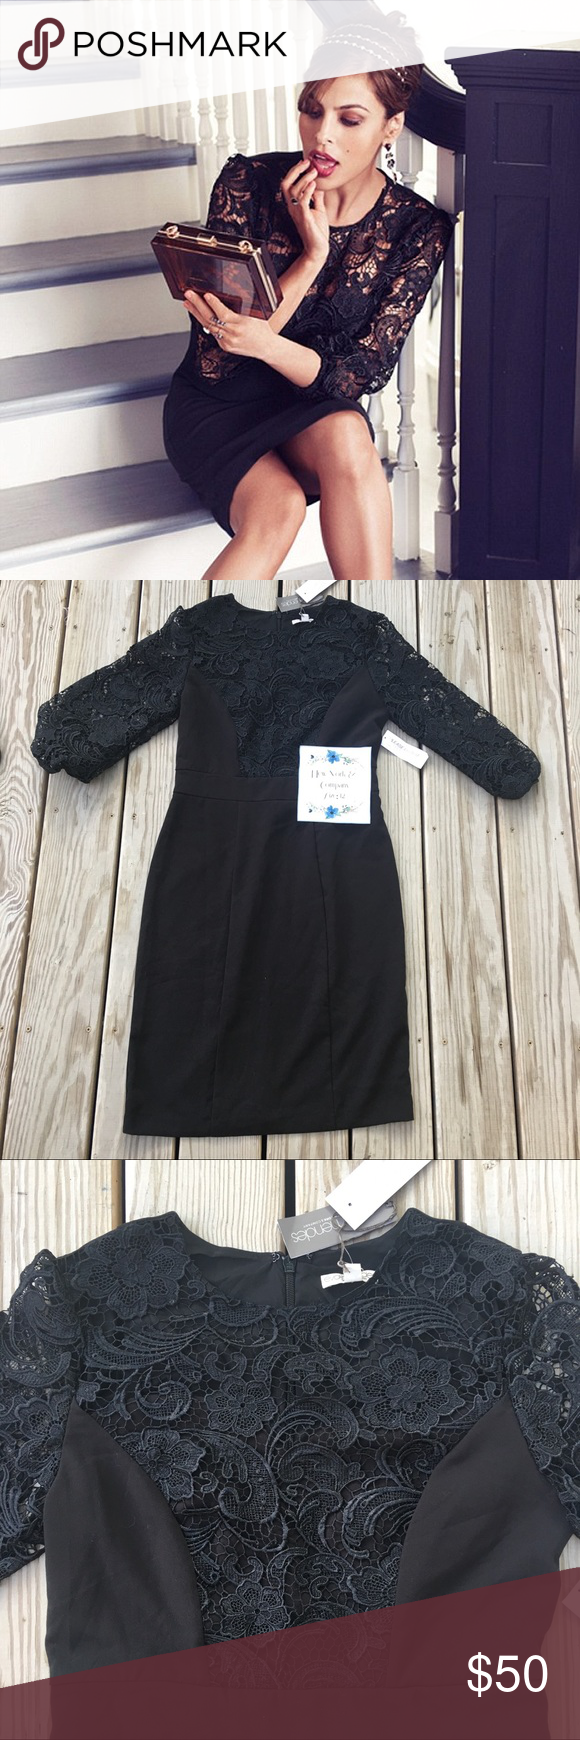 NWT NY & Co Eva Mendez Black Lace Cocktail Dress Stunning! New w/ Tags New York & Company Eva Mendez Size 12 Black Lace Cocktail Dress. Classy- very 50s. Perfect condition. Curve hugging, but definitely enough room for bust and hips. Gorgeously detailed lace arms and bodice. Perfect for holiday parties, wedding, or other special event. Feel free to ask questions, see more pictures, etc. Willing to bundle for discount (just ask! ☺️). No trades. Whoever gets this dress is a lucky lady! ☺️ New…